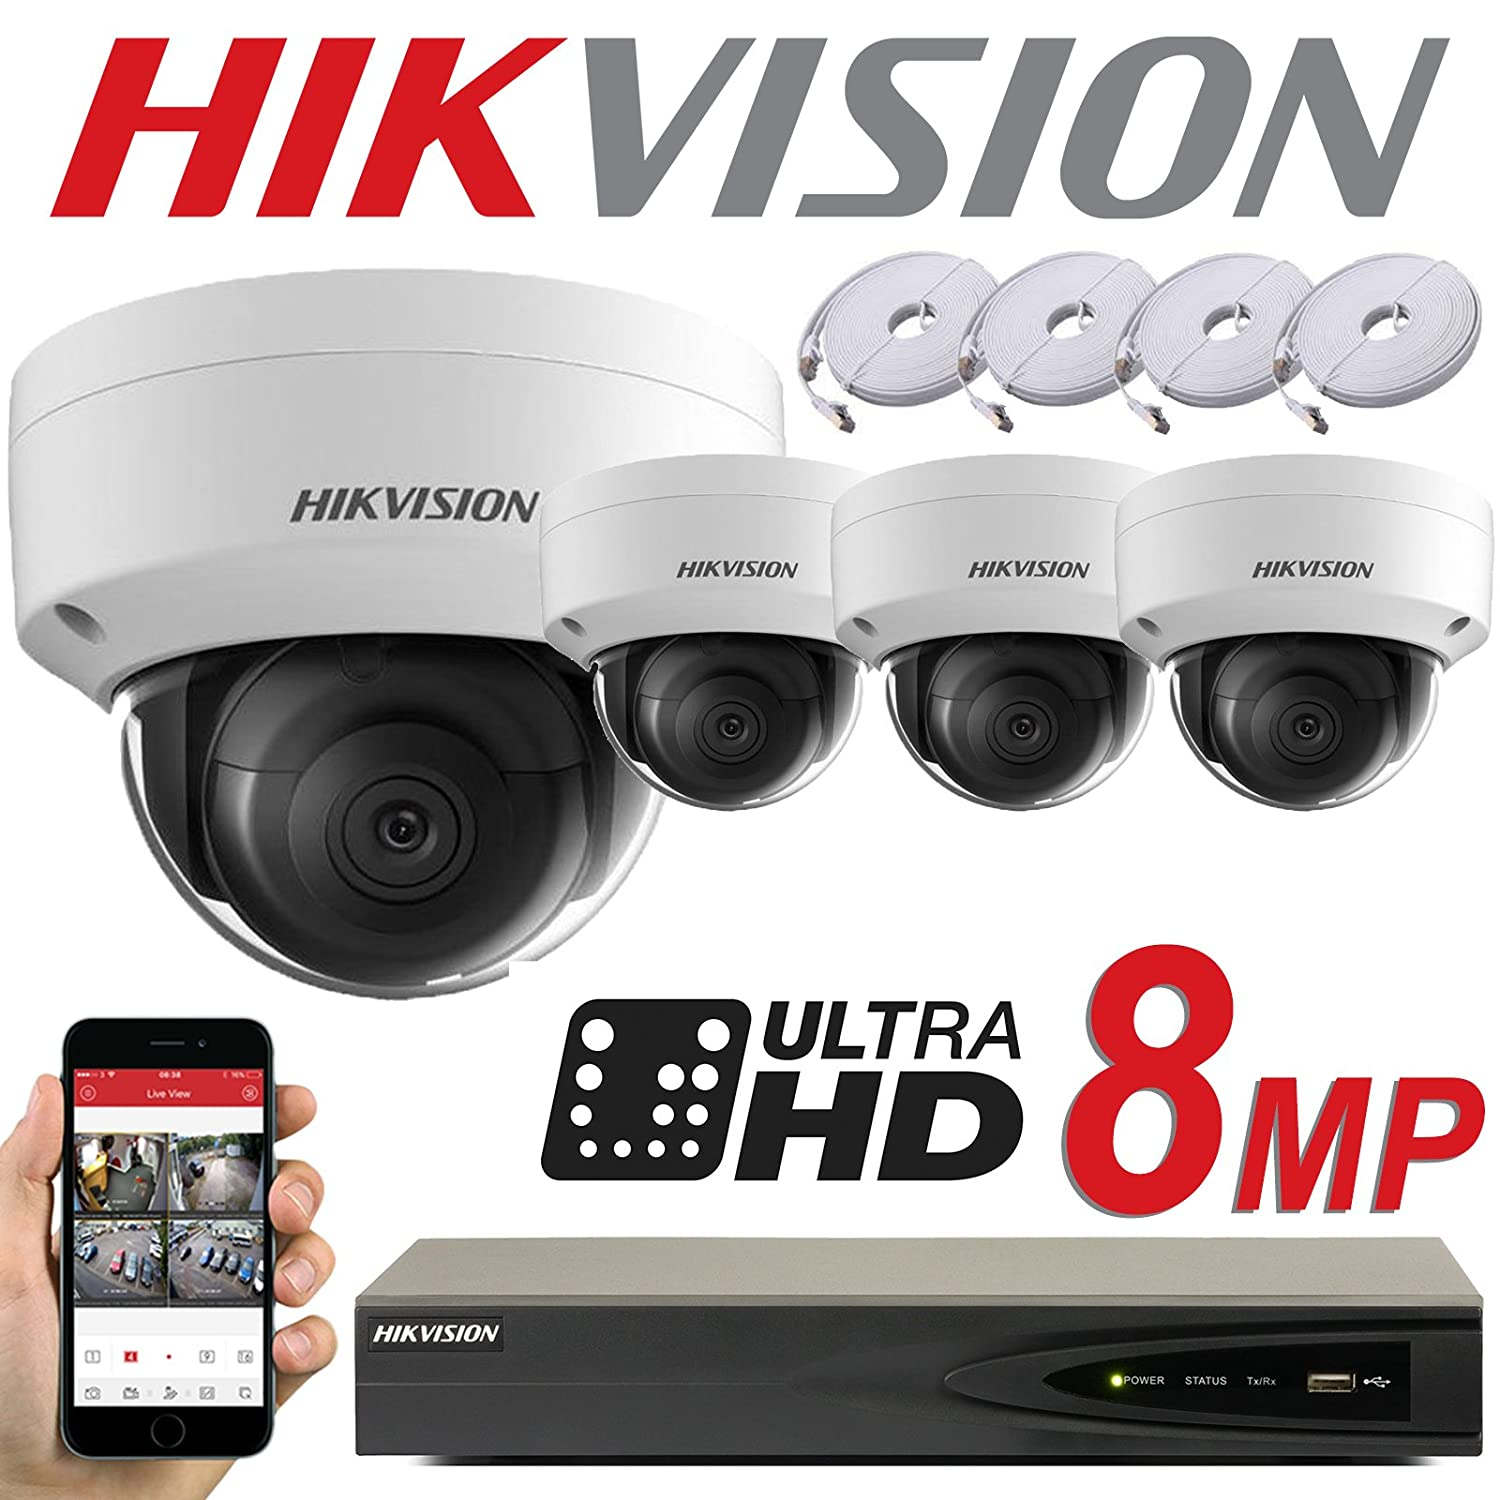 HIKVISION 8MP SYSTEM 4CH CHANNEL NVR IP POE 8 MP MEGAPIXEL CCTV 2 8MM DOME  CAMERA DIGITAL NETWORK KIT TRADE INDOOR OUTDOOR NIGHT VISION TRADE UK